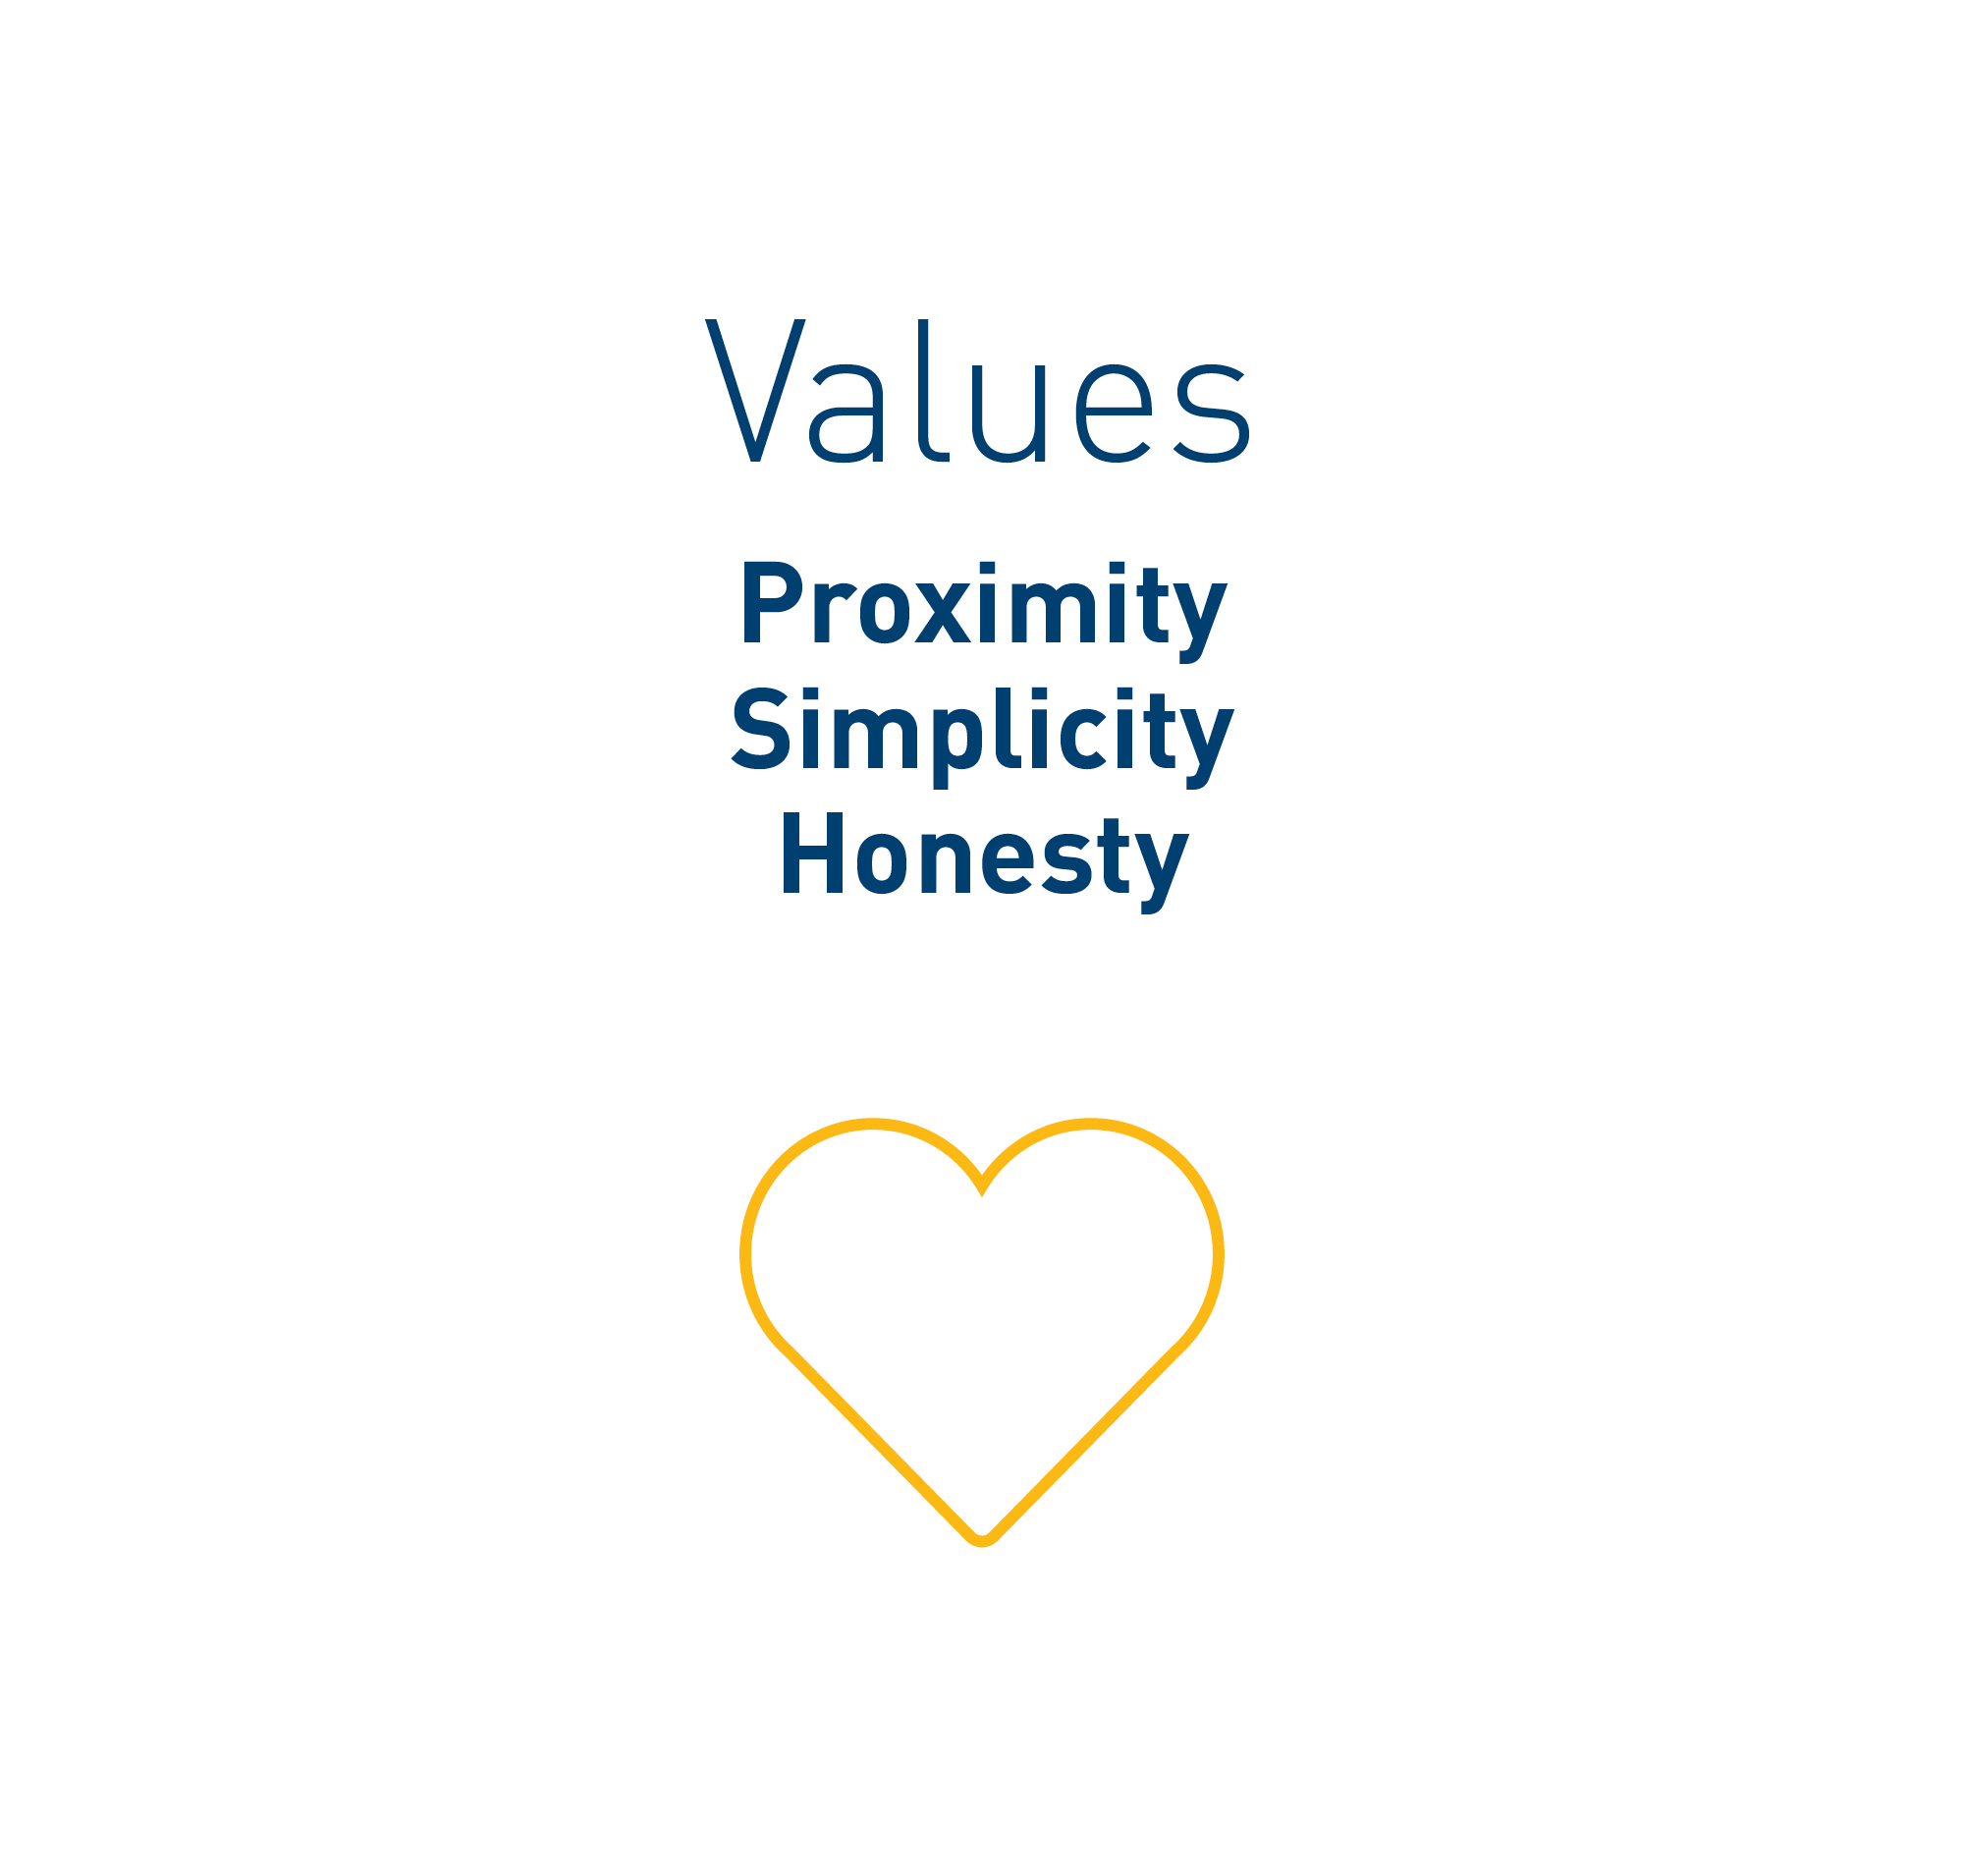 Text in image: Values – Proximity, simplicity, honesty